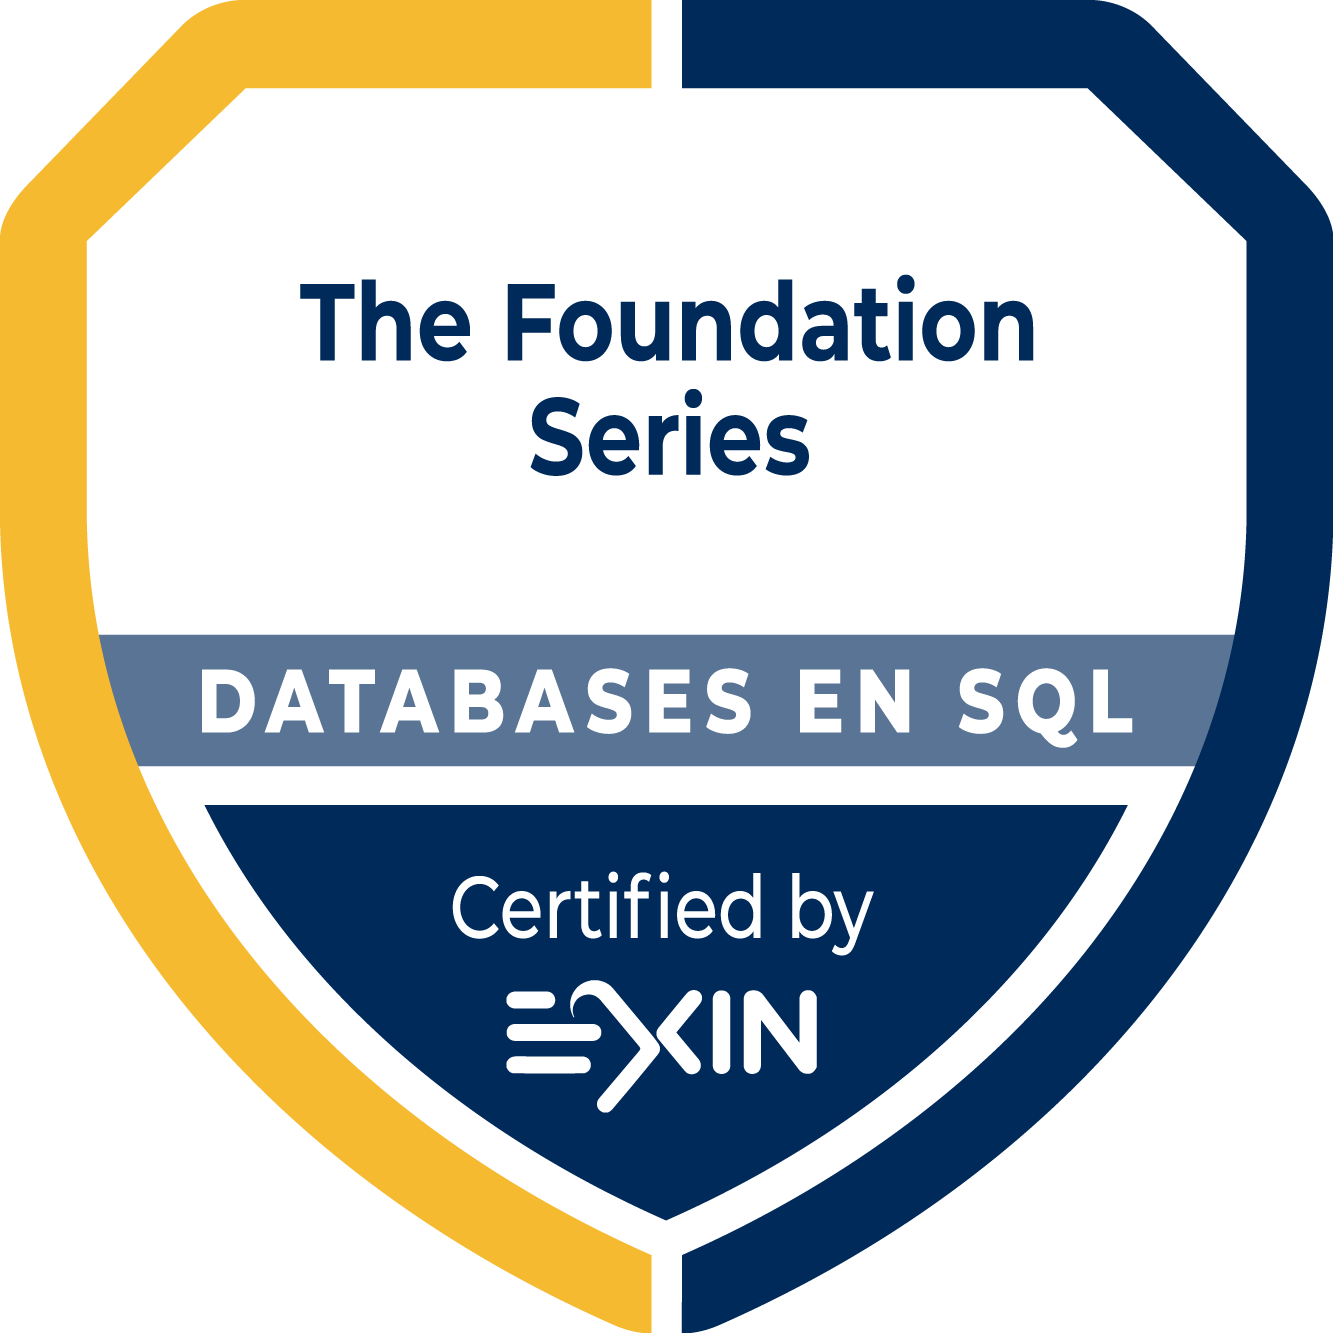 Databases en SQL Foundation